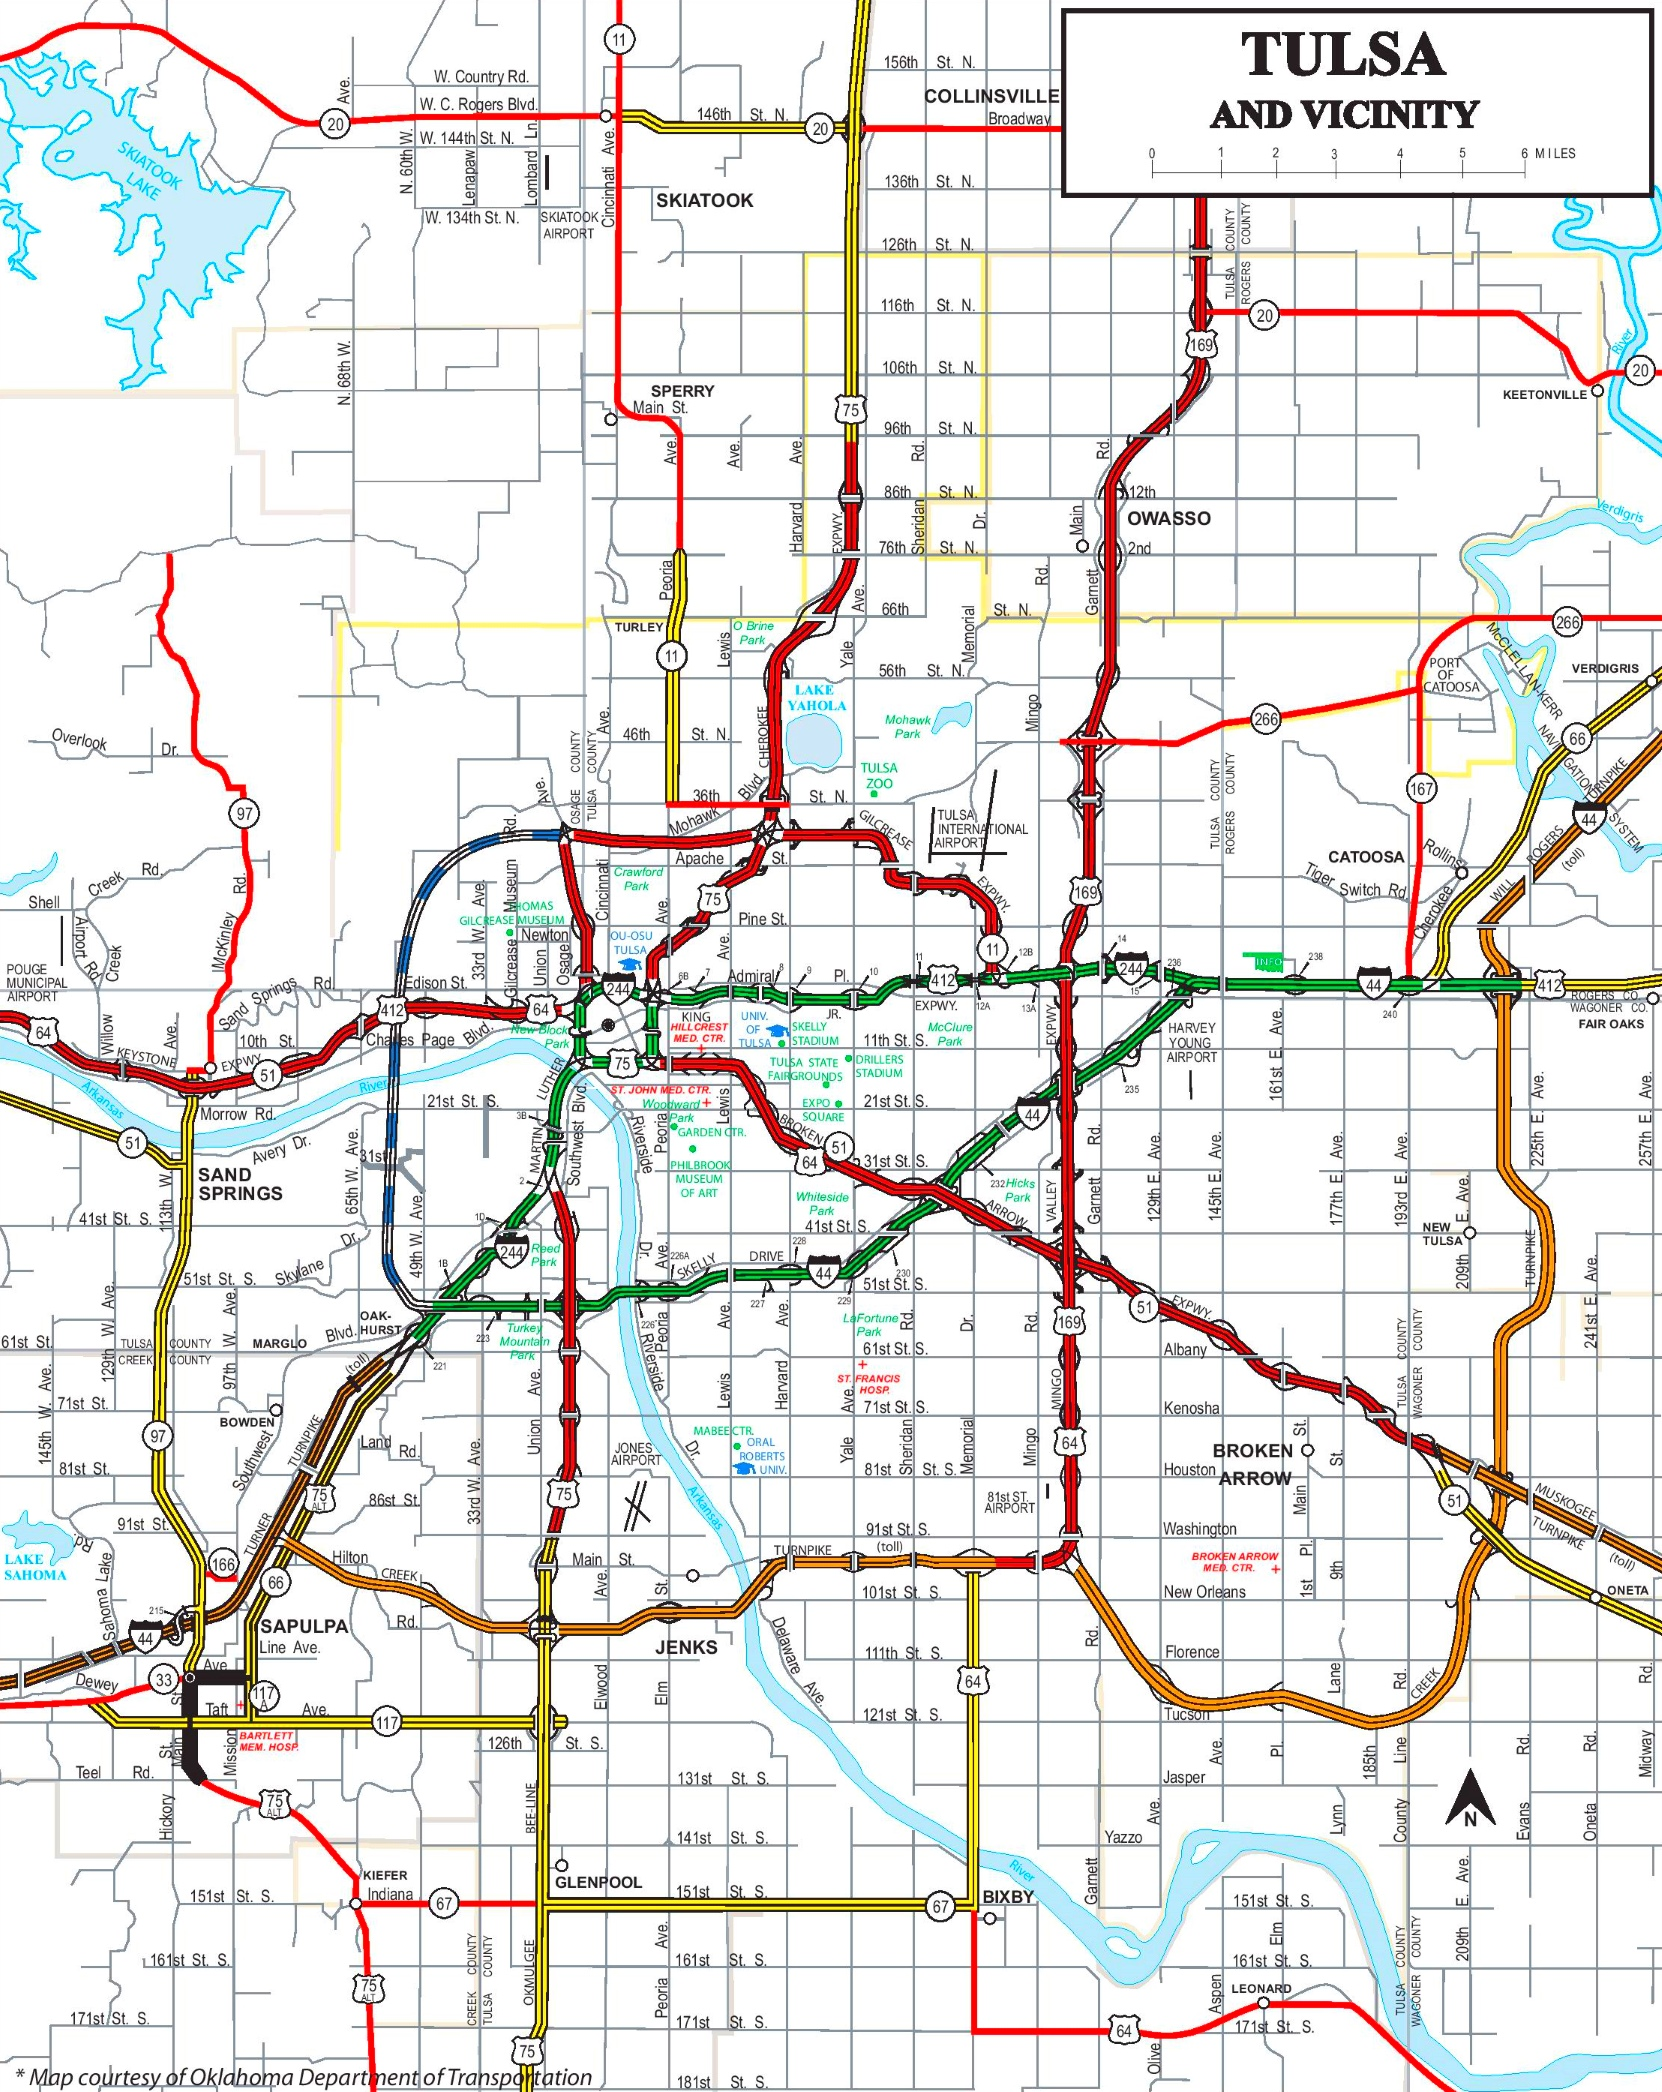 Tulsa road map